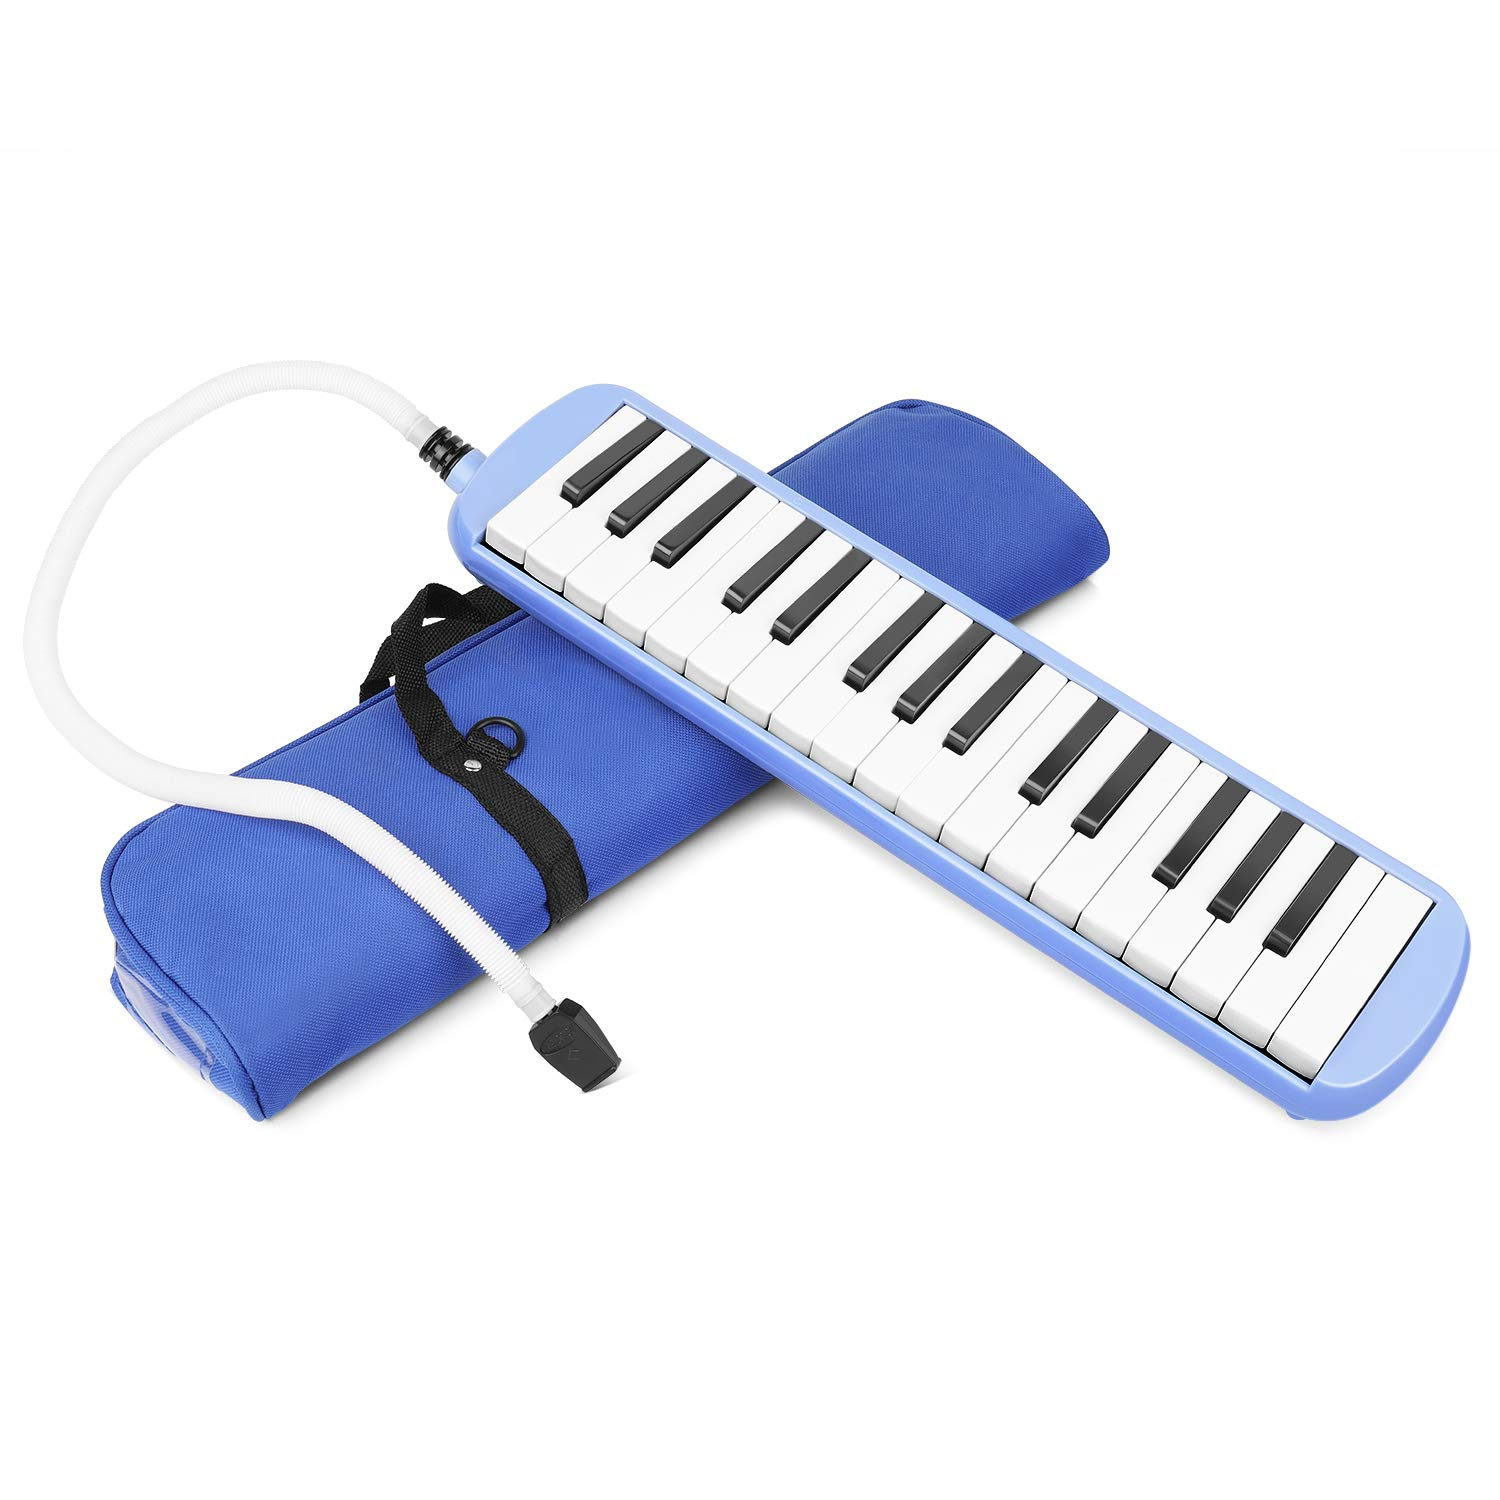 Flexzion Melodica 32 Piano Keys - Melodica Keyboard with Mouthpiece Tube, Portable Musical Instrument Pianica Melodicas Piano Style with Carrying Bag (32 Key) (Blue)